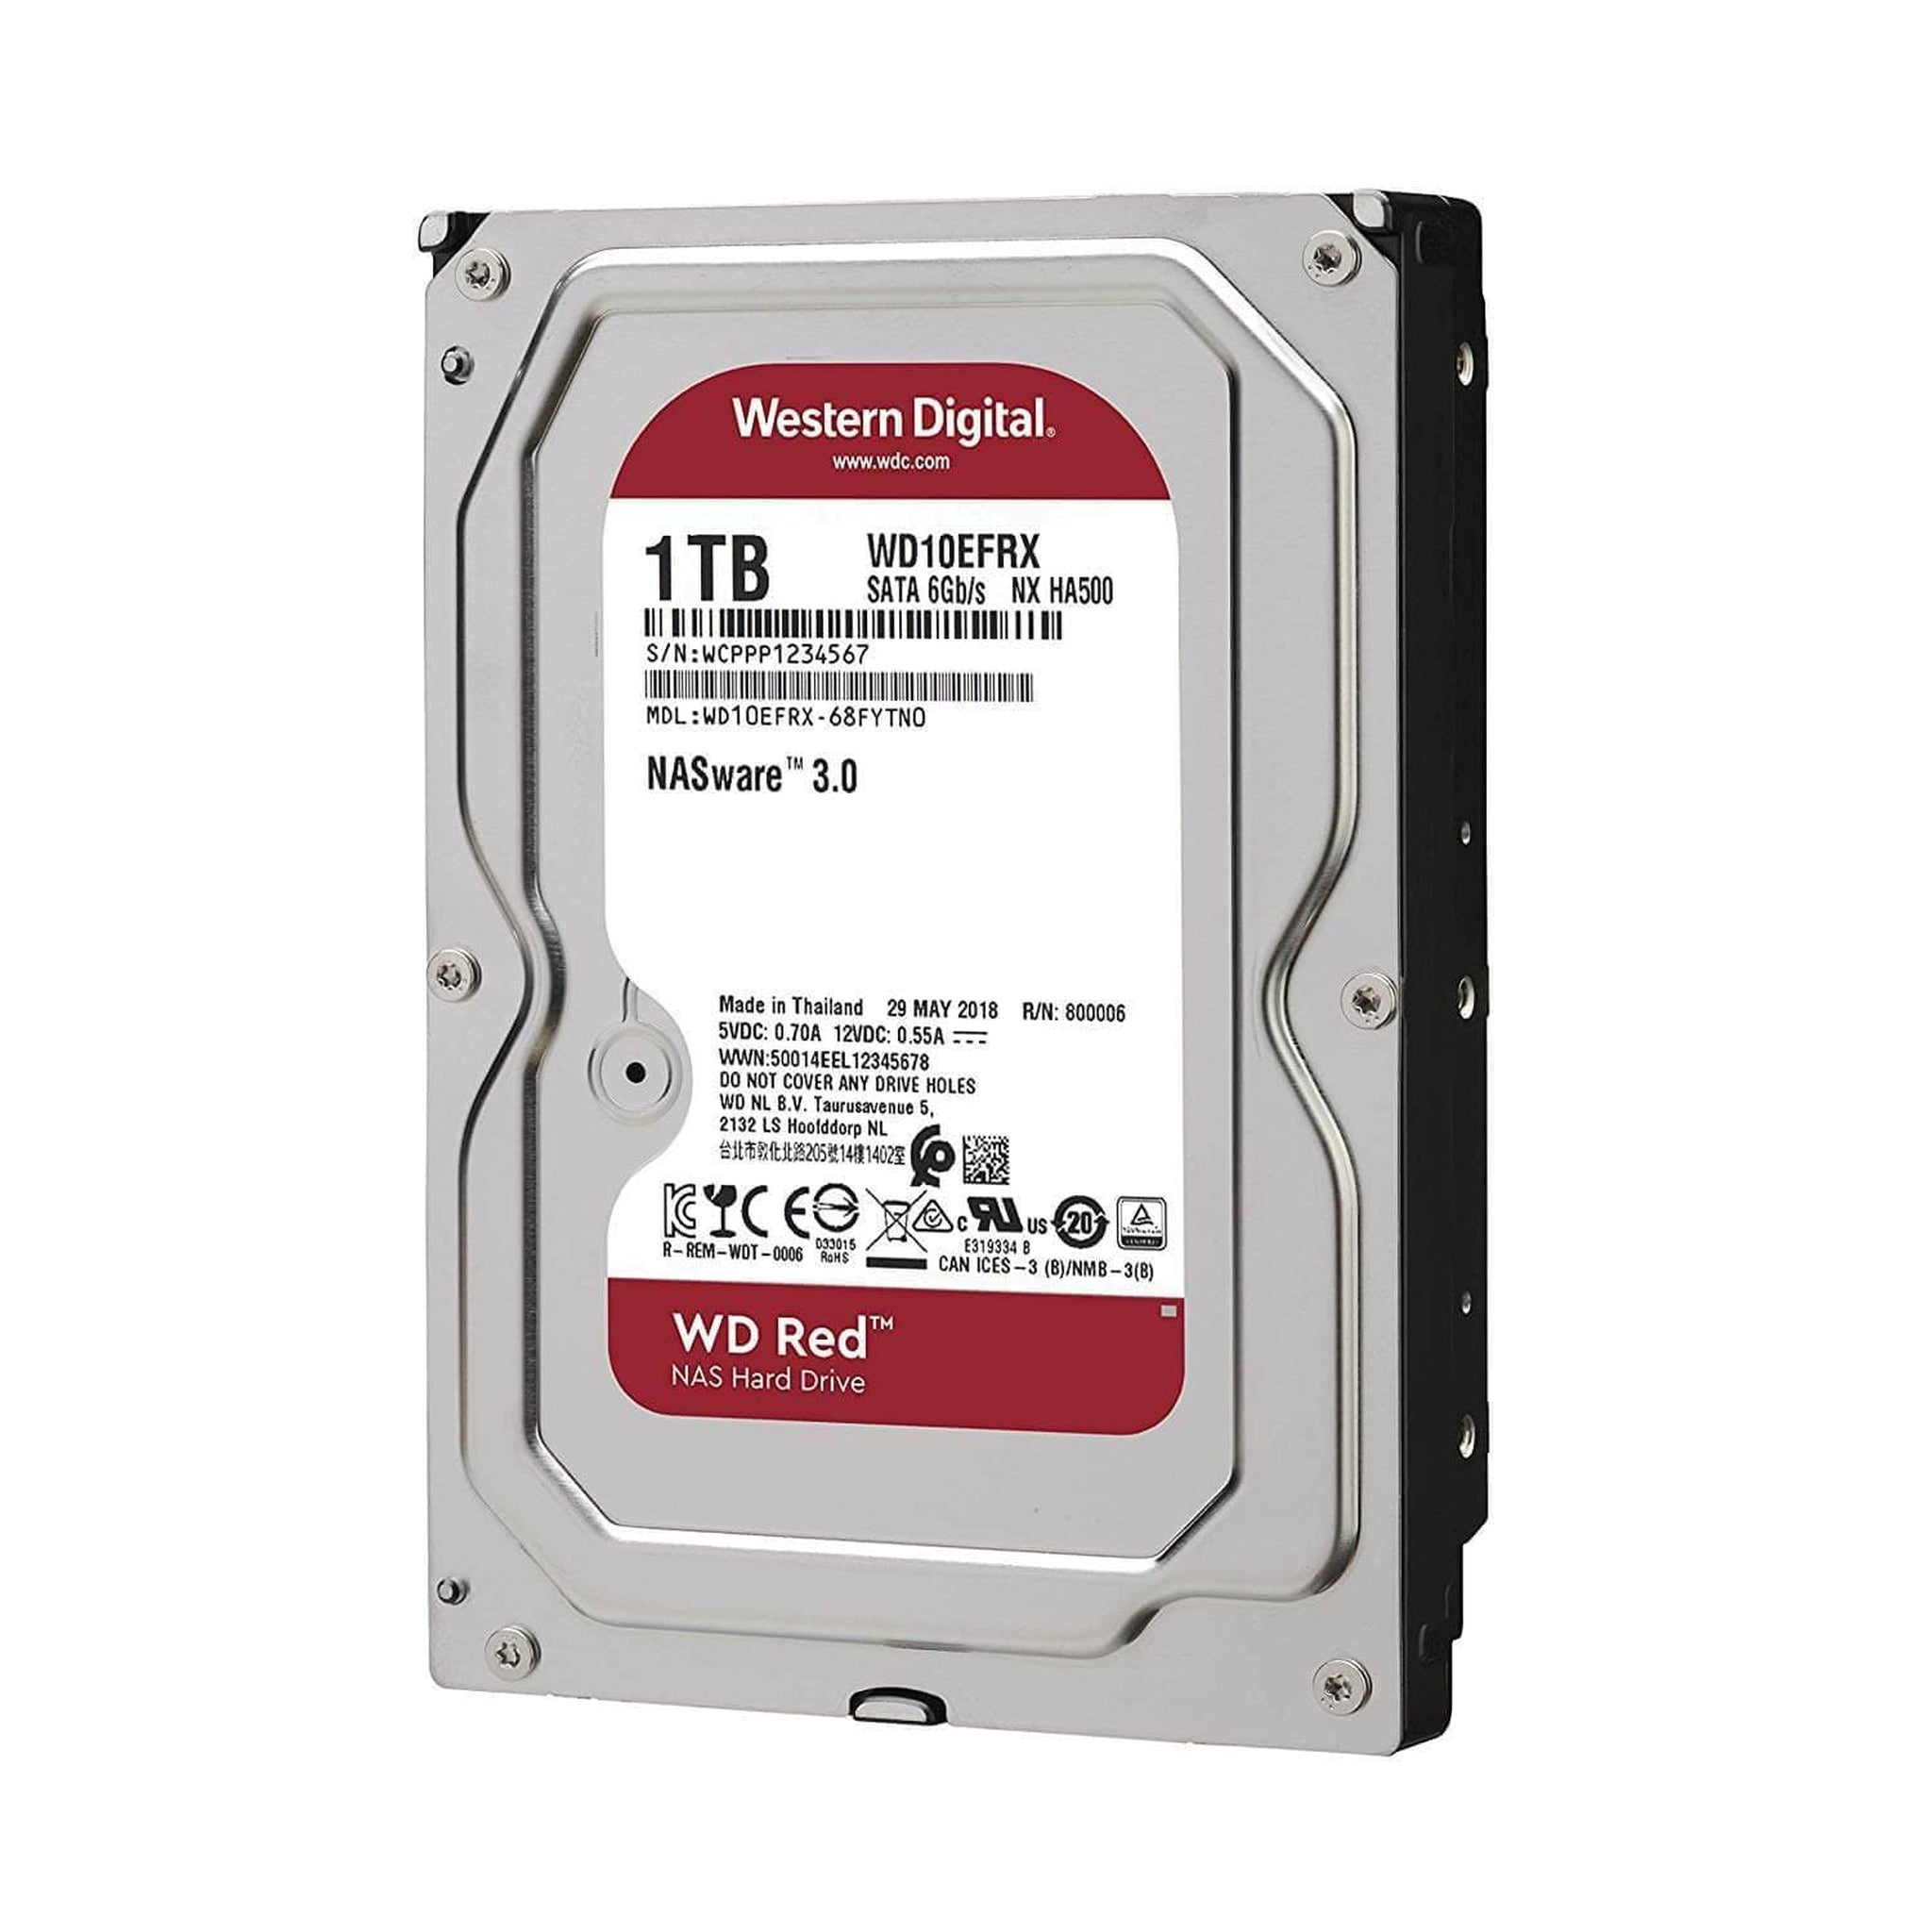 Western Digital 1TB (RED) 64MB 7200RPM - Choice Computer Technologies